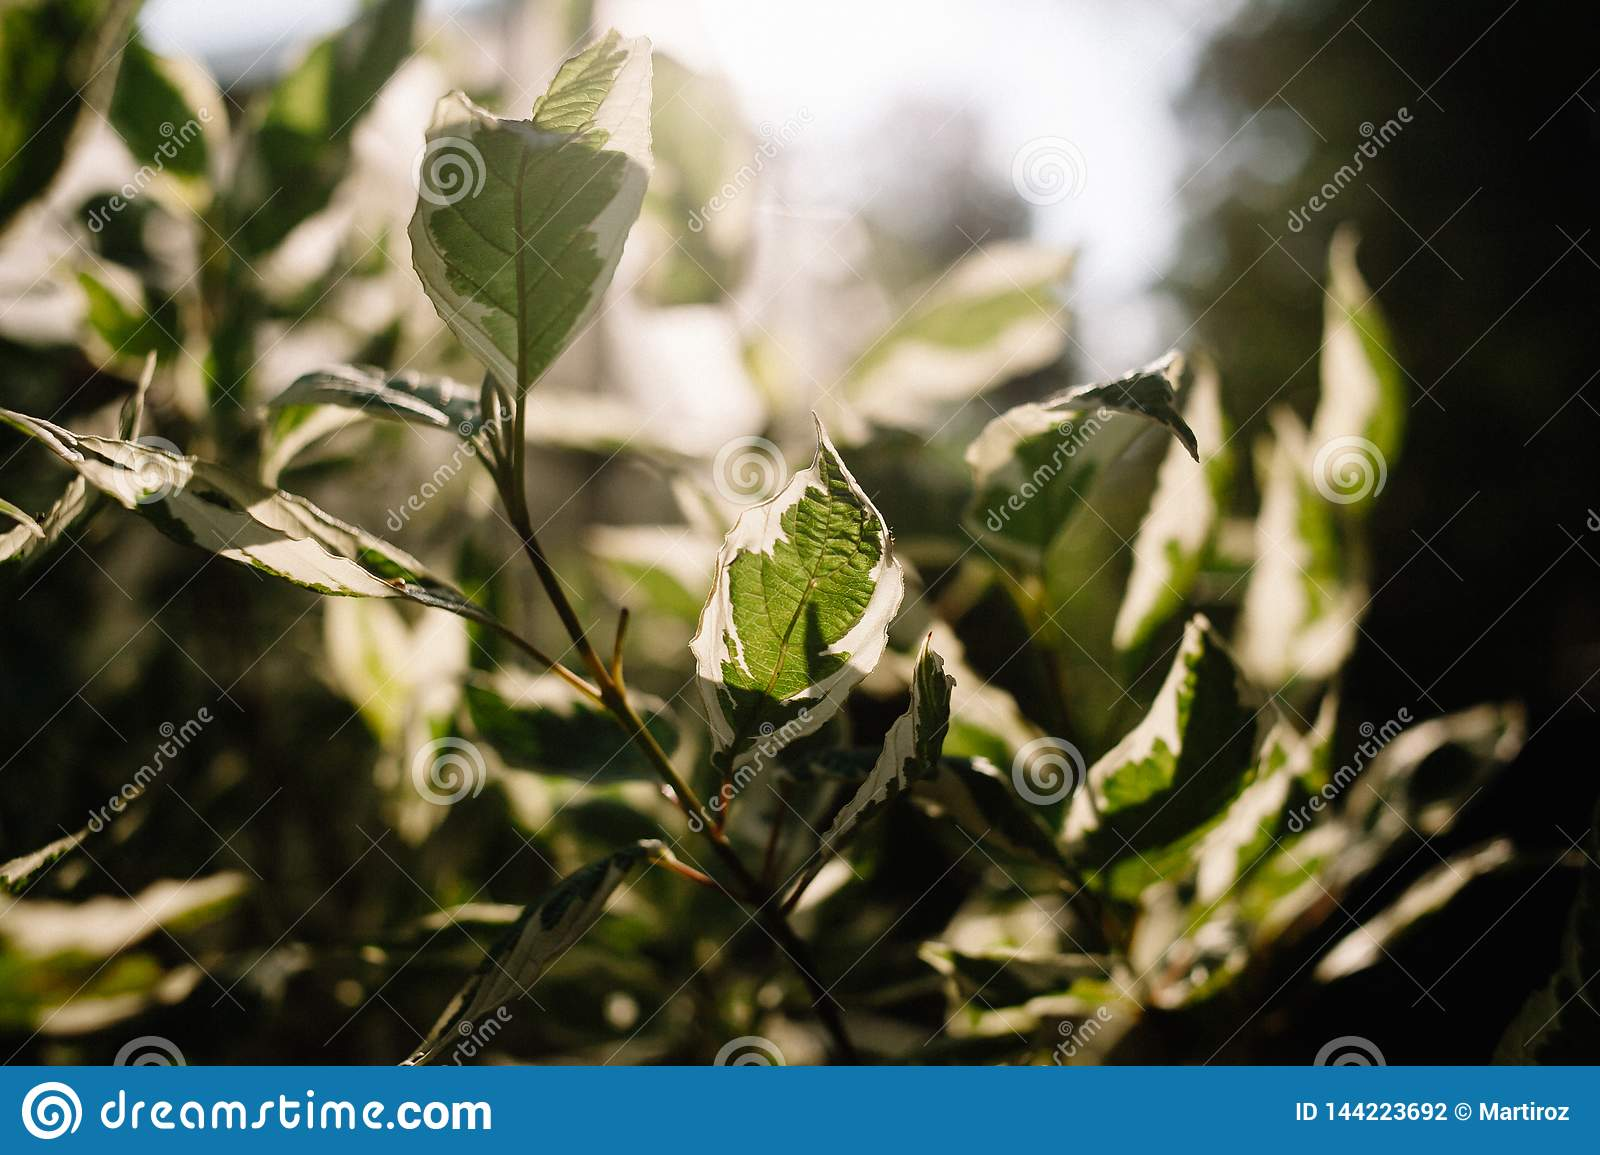 Pedilanthus with green leaves. Shallow depth of field. Leaves in backlit sunlight